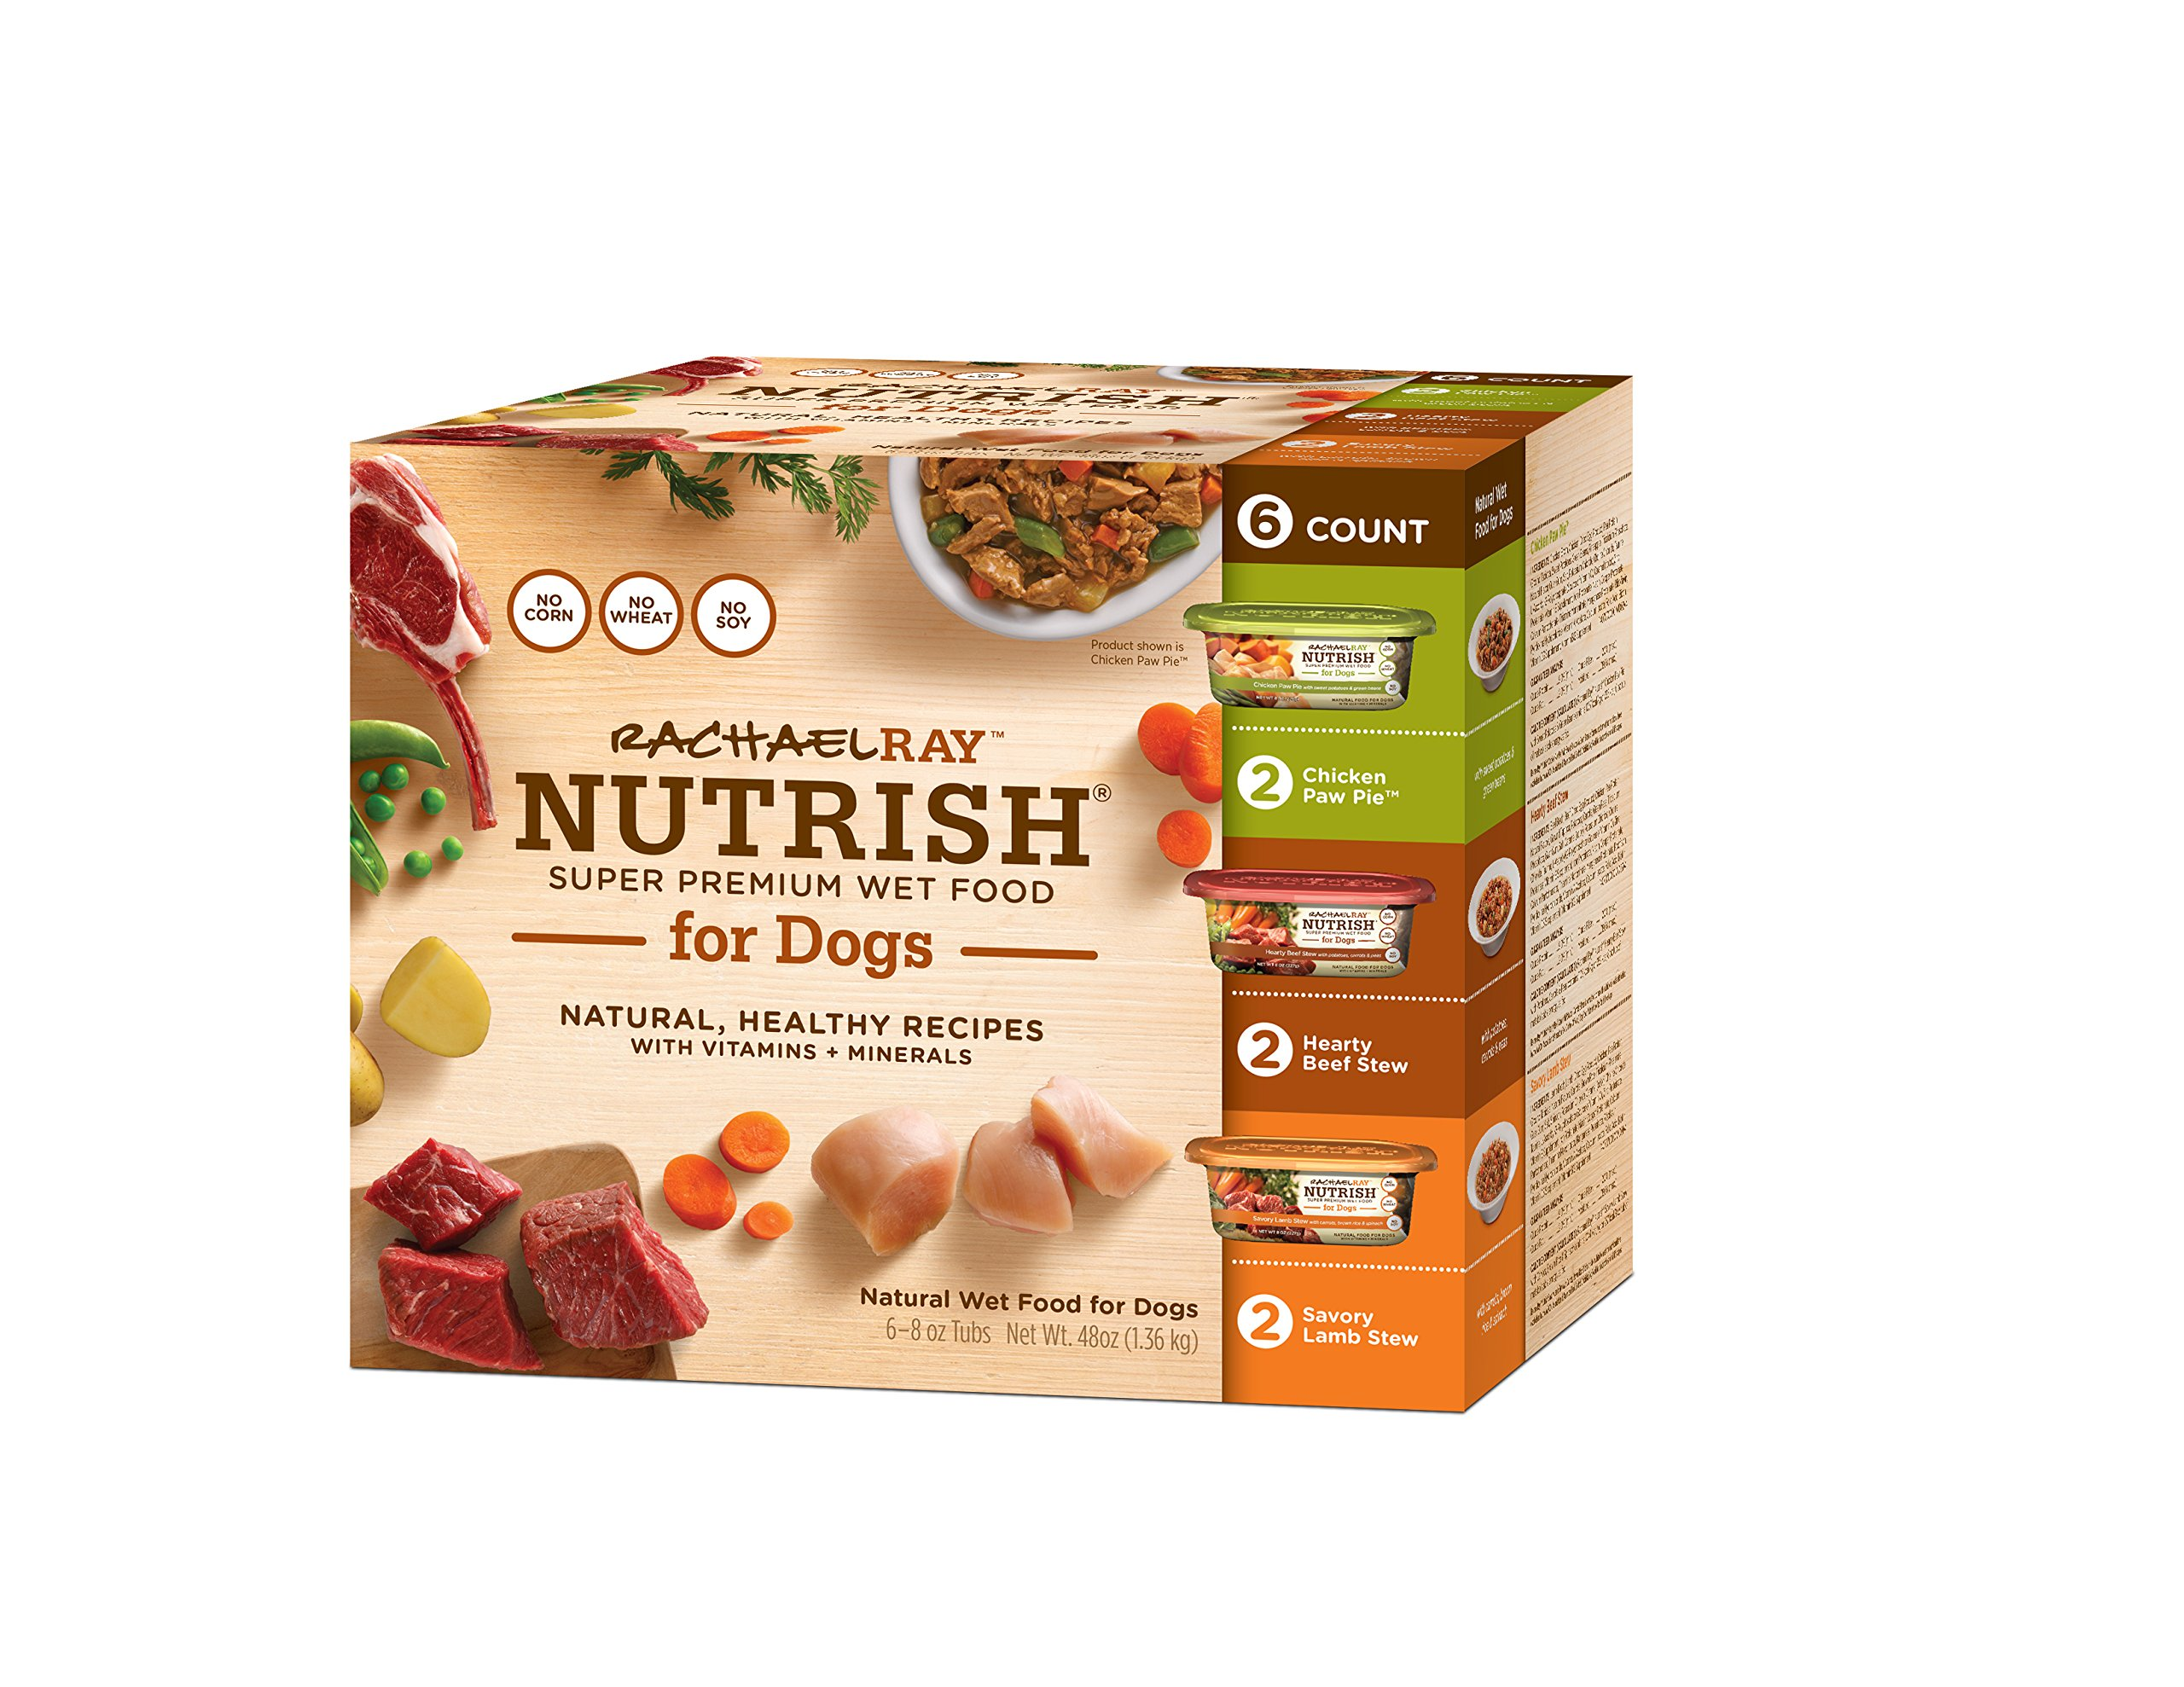 Rachael Ray Nutrish Natural Wet Dog Food Variety Pack 8 oz Tub (Pack of 6)